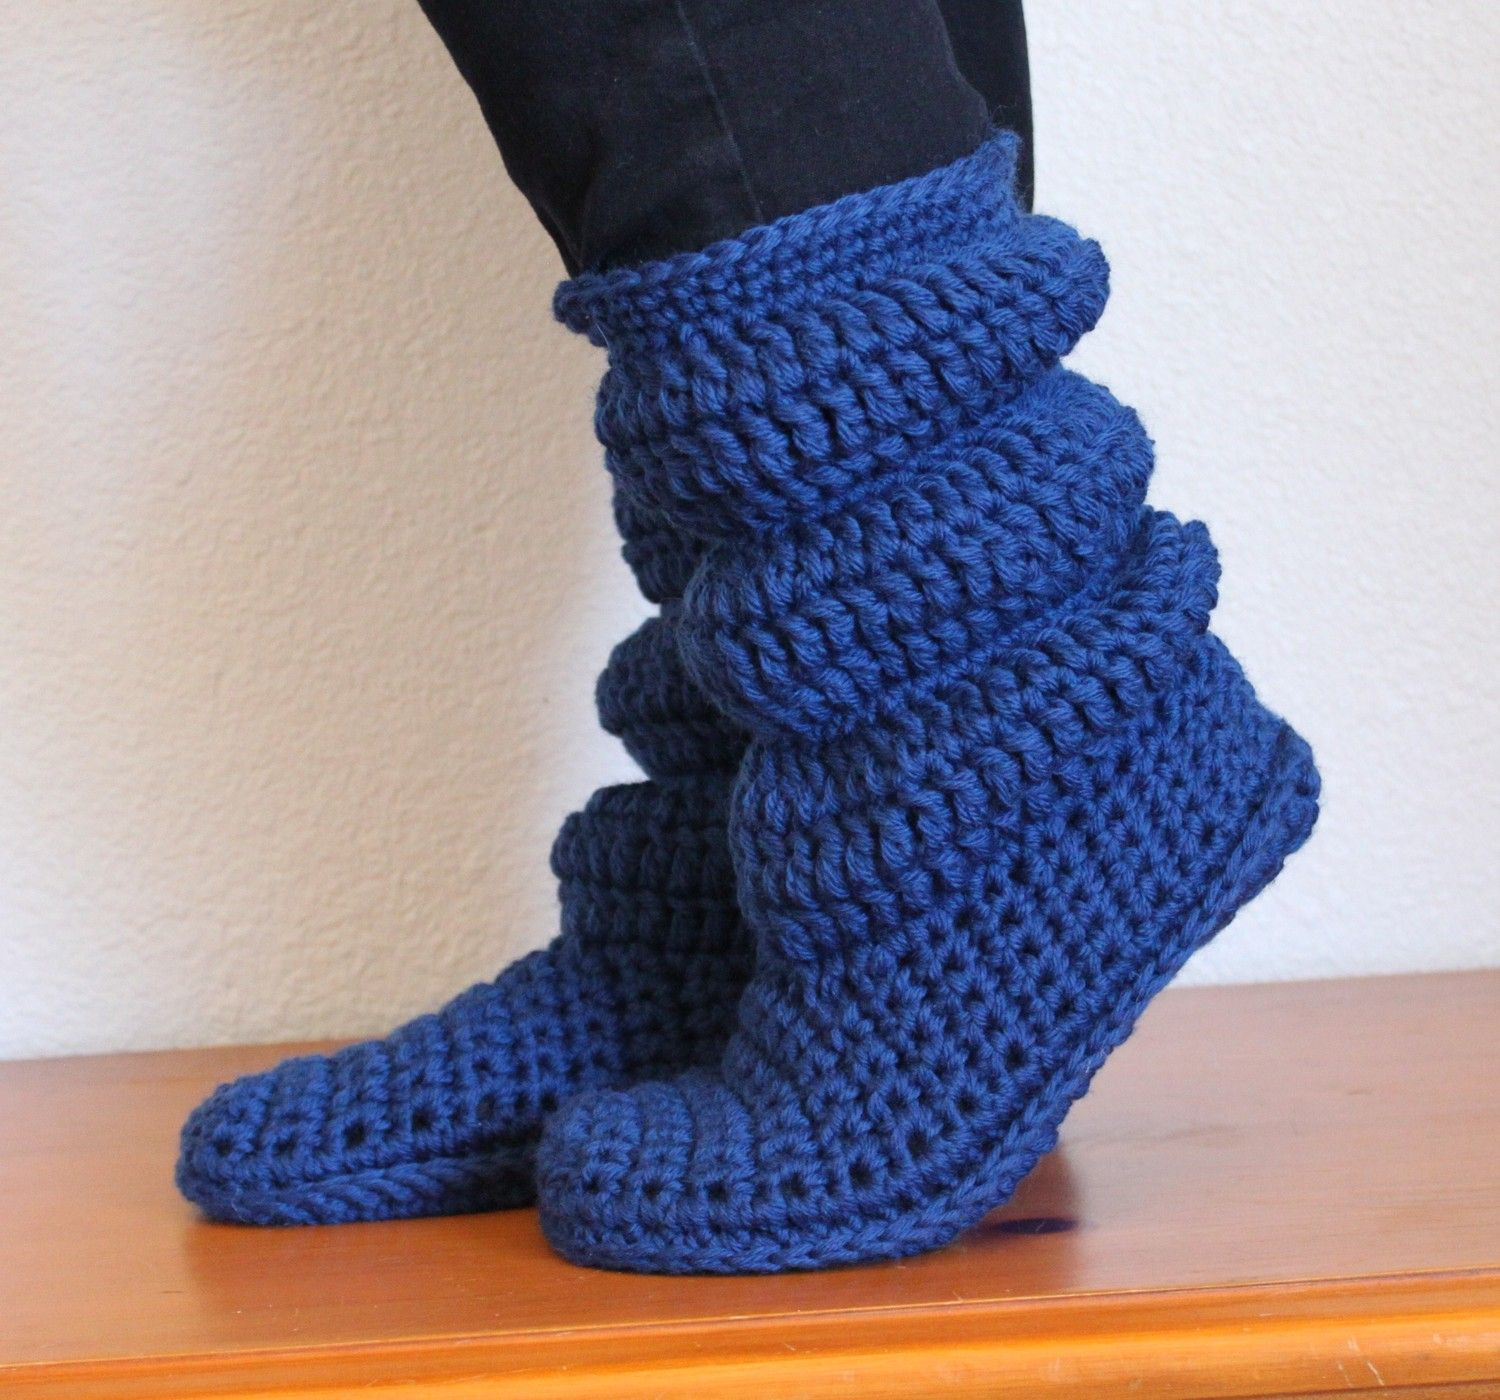 Crochet pattern hollydoll cozy boots the original and best us crochet pattern hollydoll cozy boots the original and best us womens sizes 5 bankloansurffo Image collections